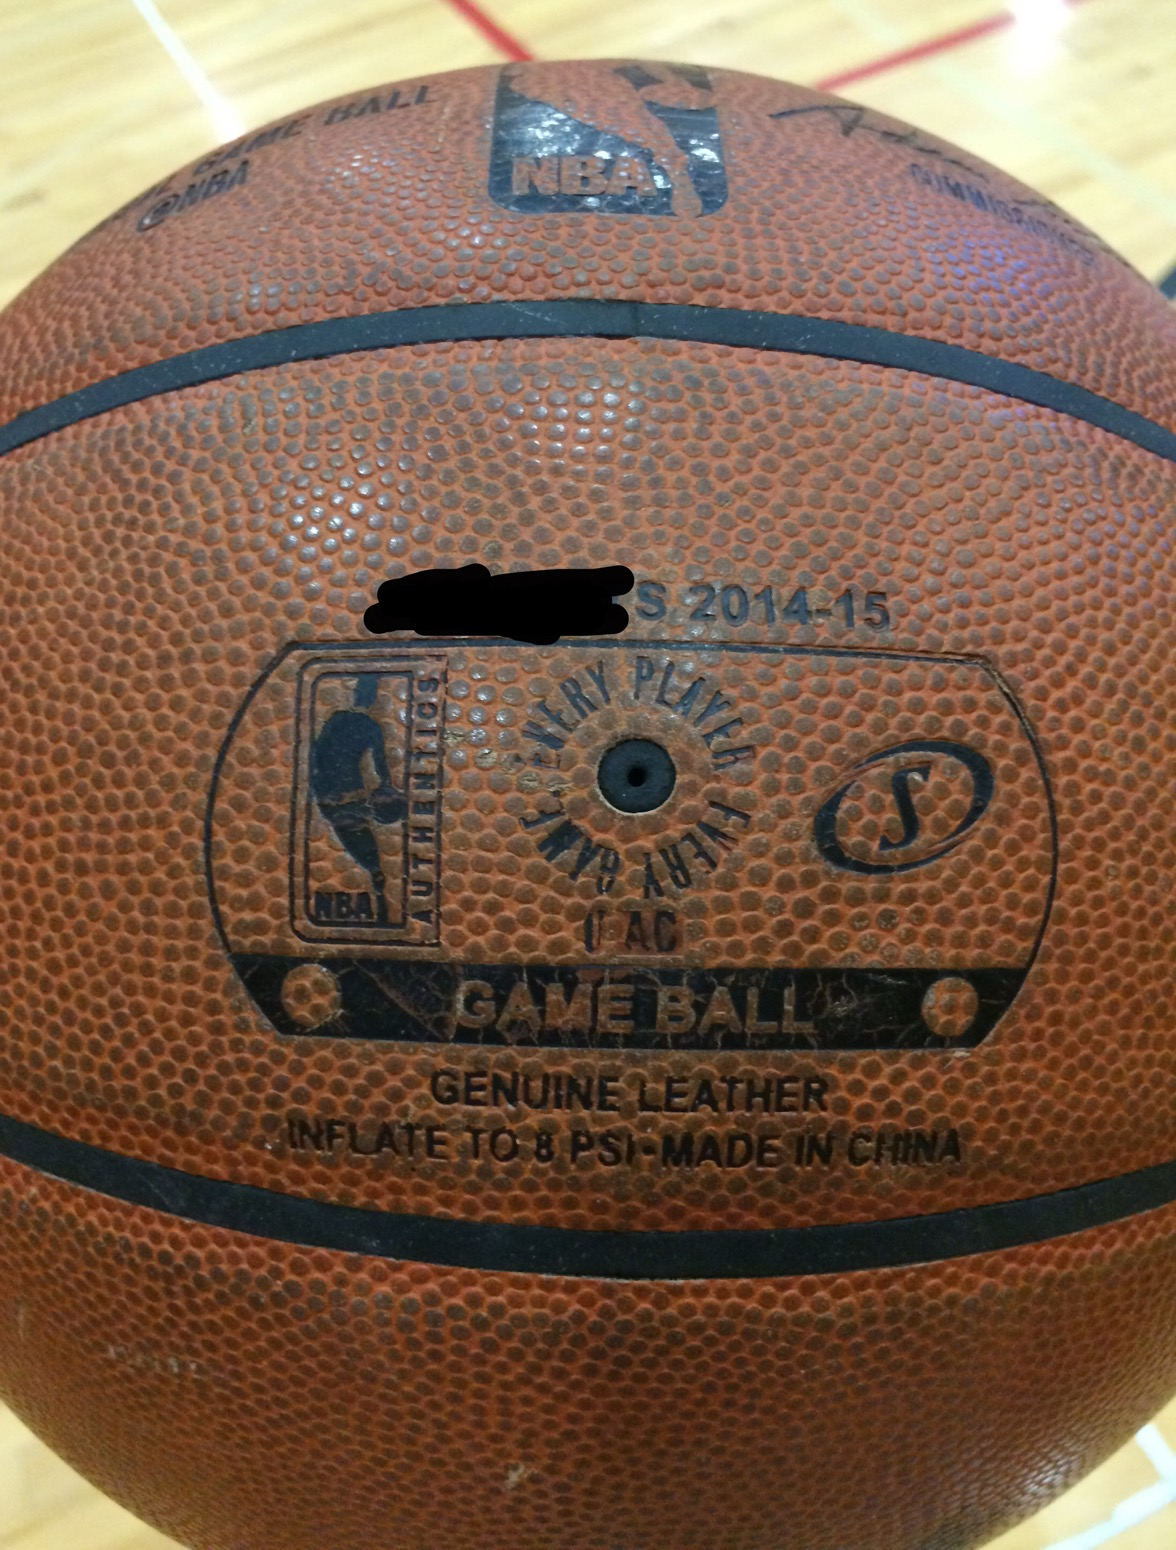 Basketball Ball Does The Nba Use The Same Ball We Can Buy Off The Shelf